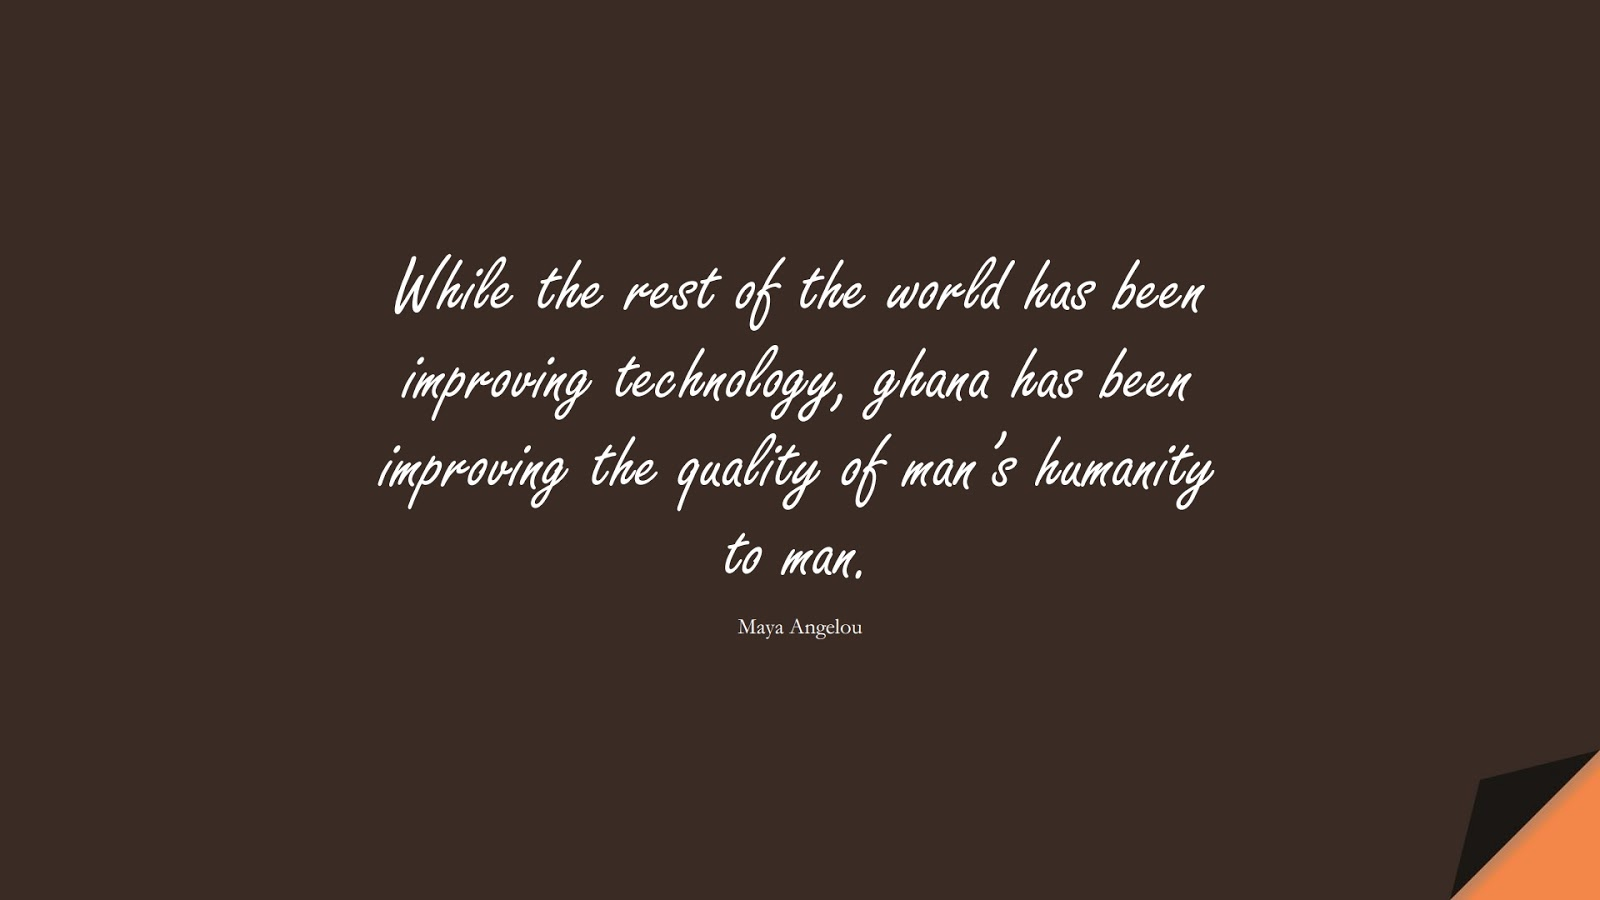 While the rest of the world has been improving technology, ghana has been improving the quality of man's humanity to man. (Maya Angelou);  #MayaAngelouQuotes